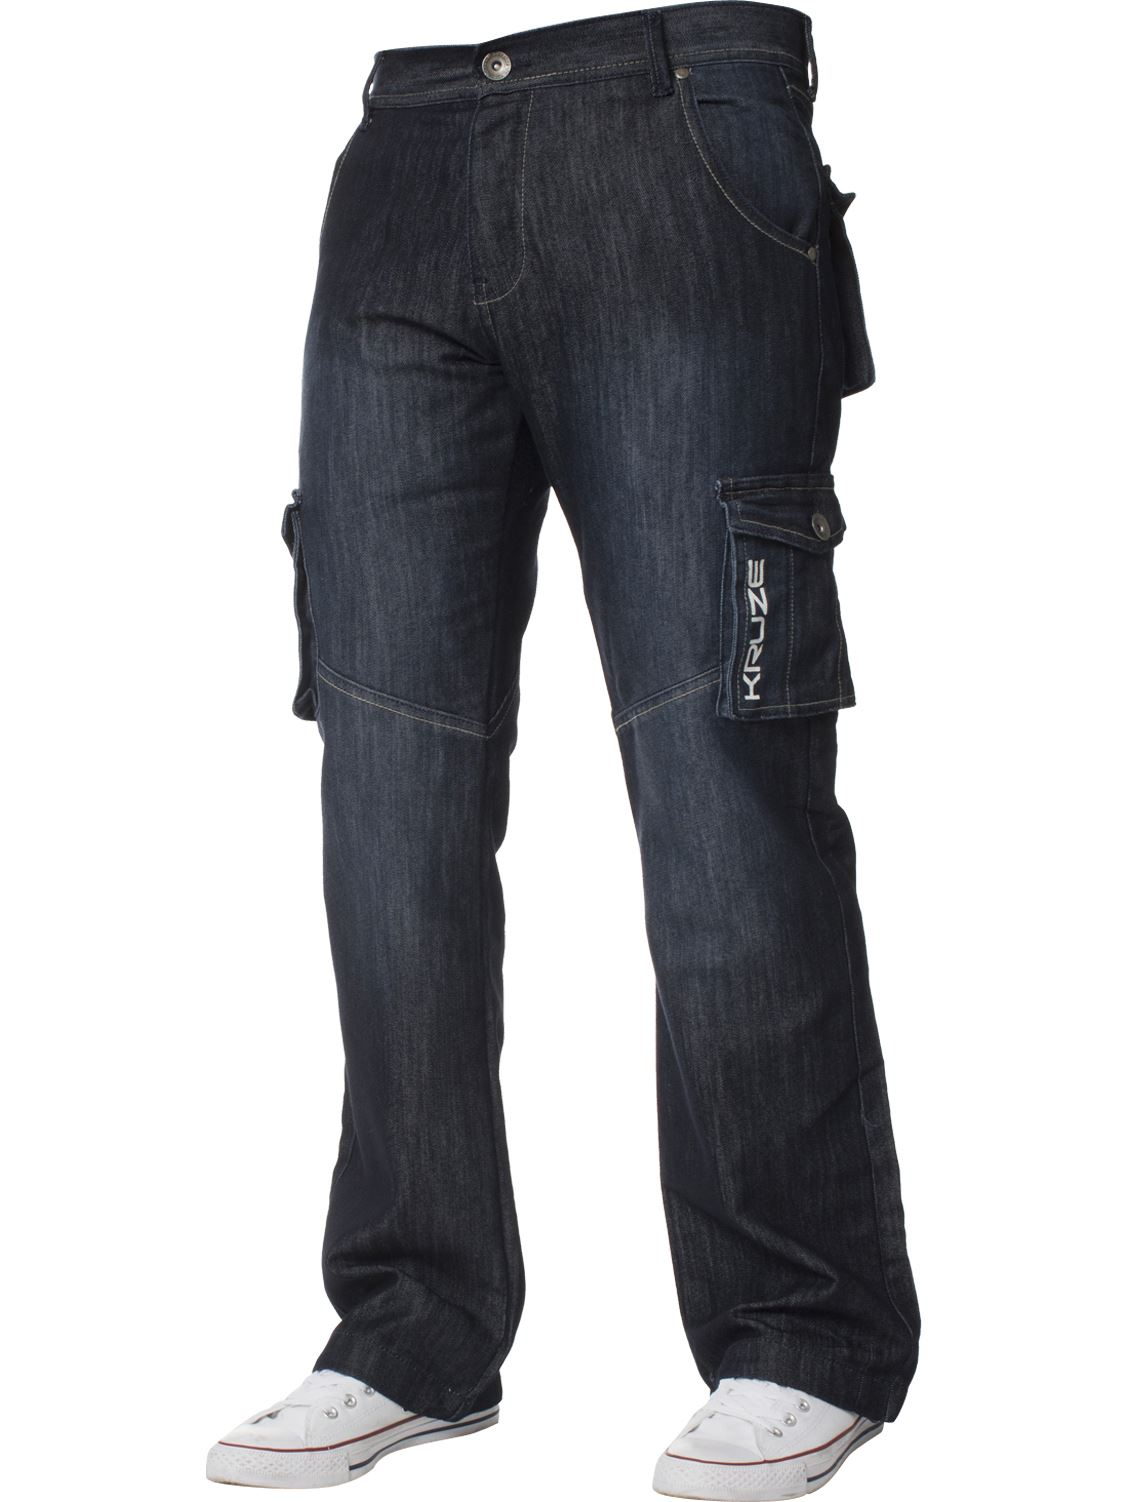 Mens-Cargo-Combat-Trousers-Jeans-Heavy-Duty-Work-Casual-Pants-Big-Tall-All-Sizes thumbnail 12